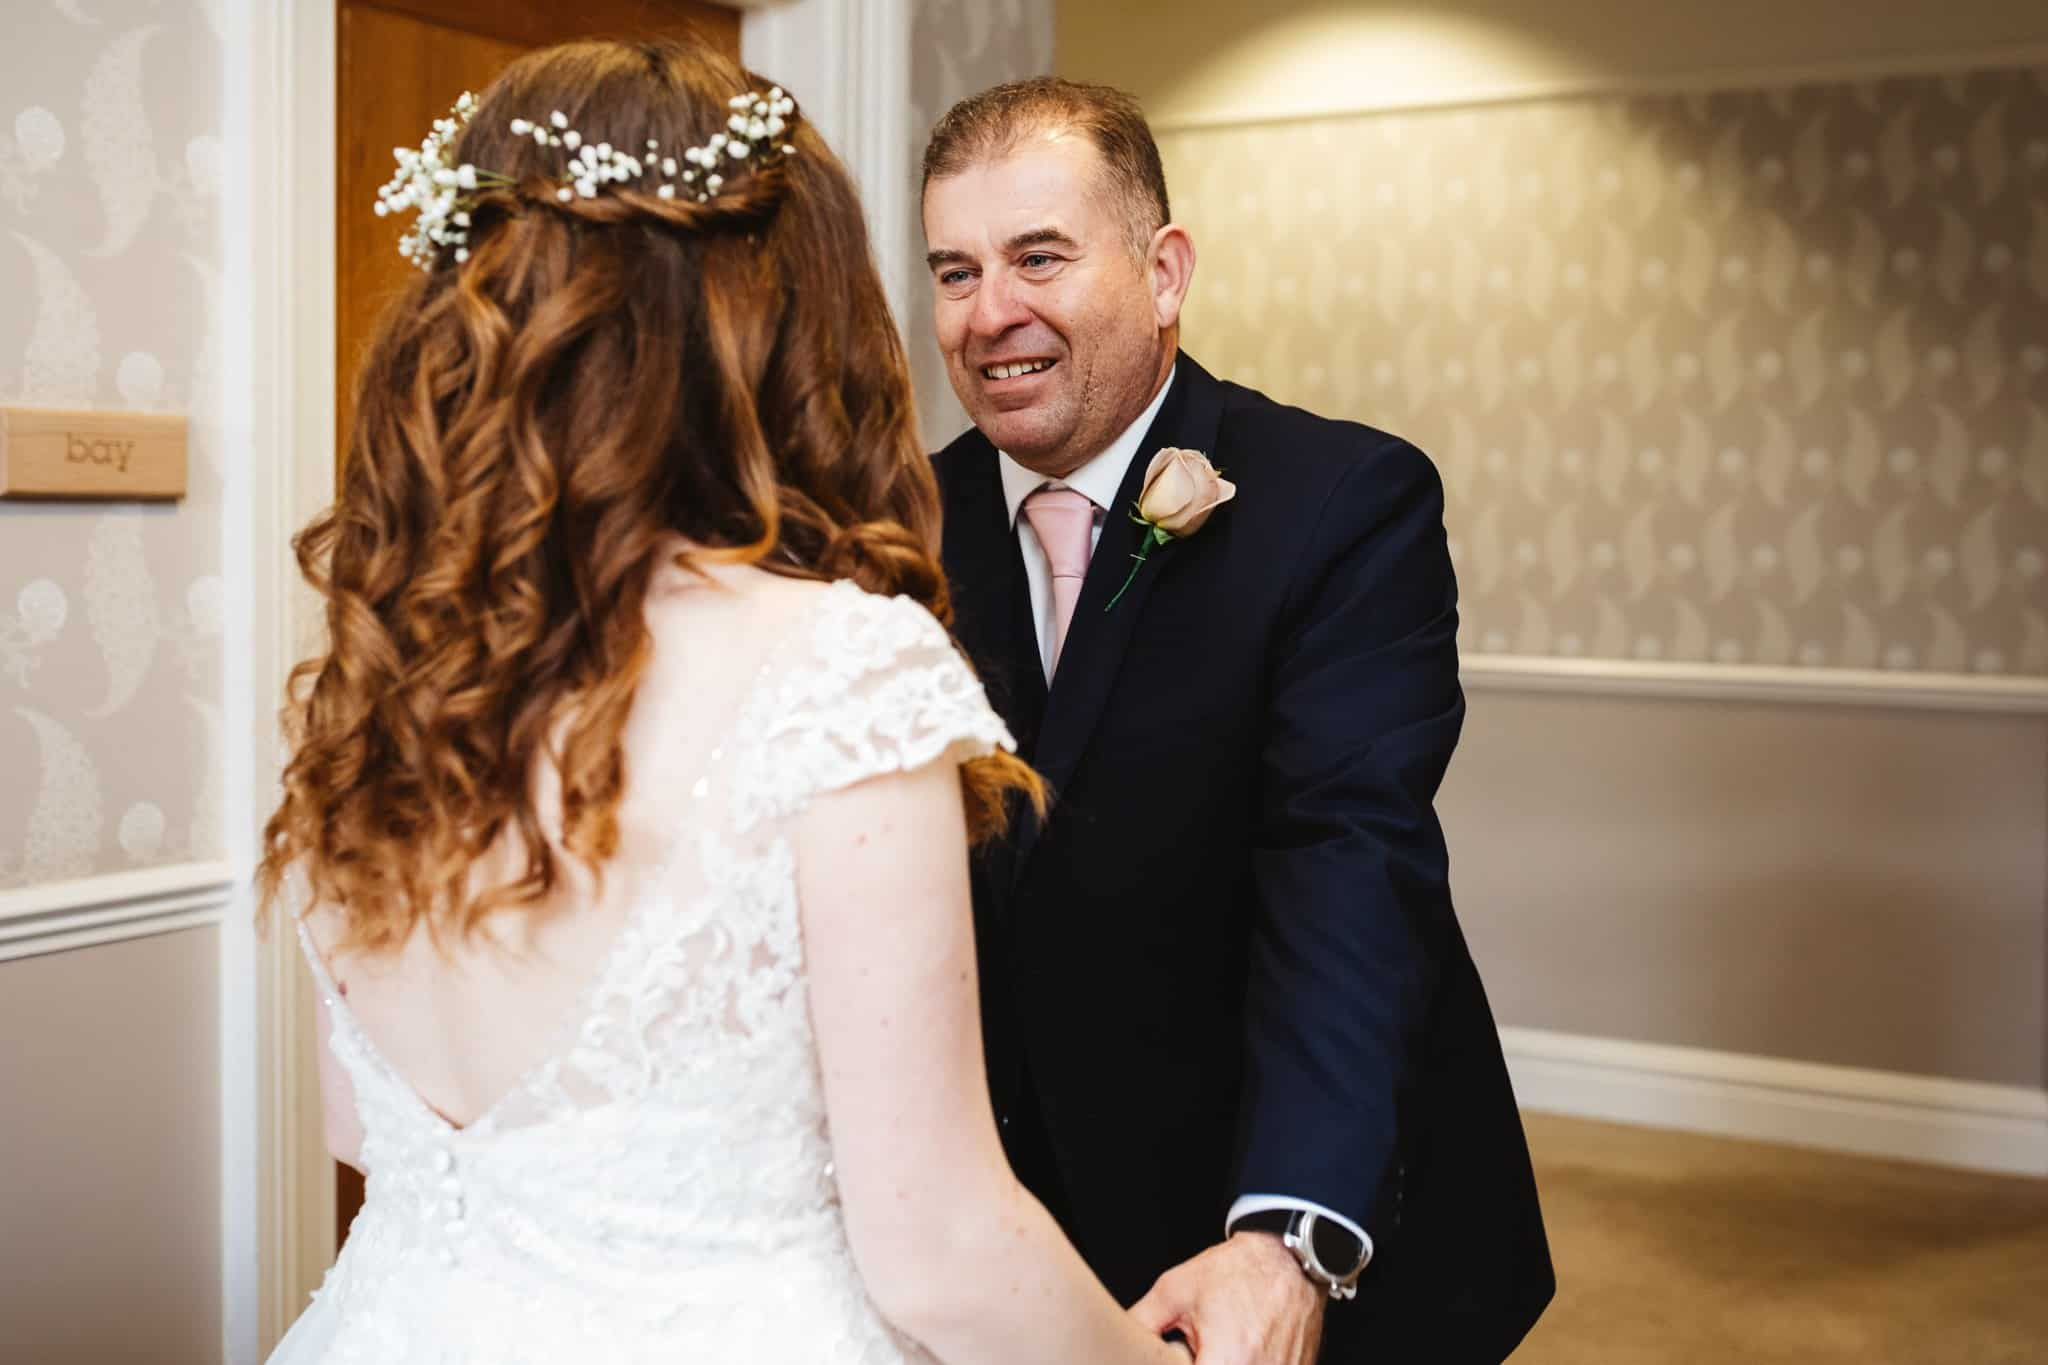 Hamshire wedding photographer, hampshire wedding photogragphy